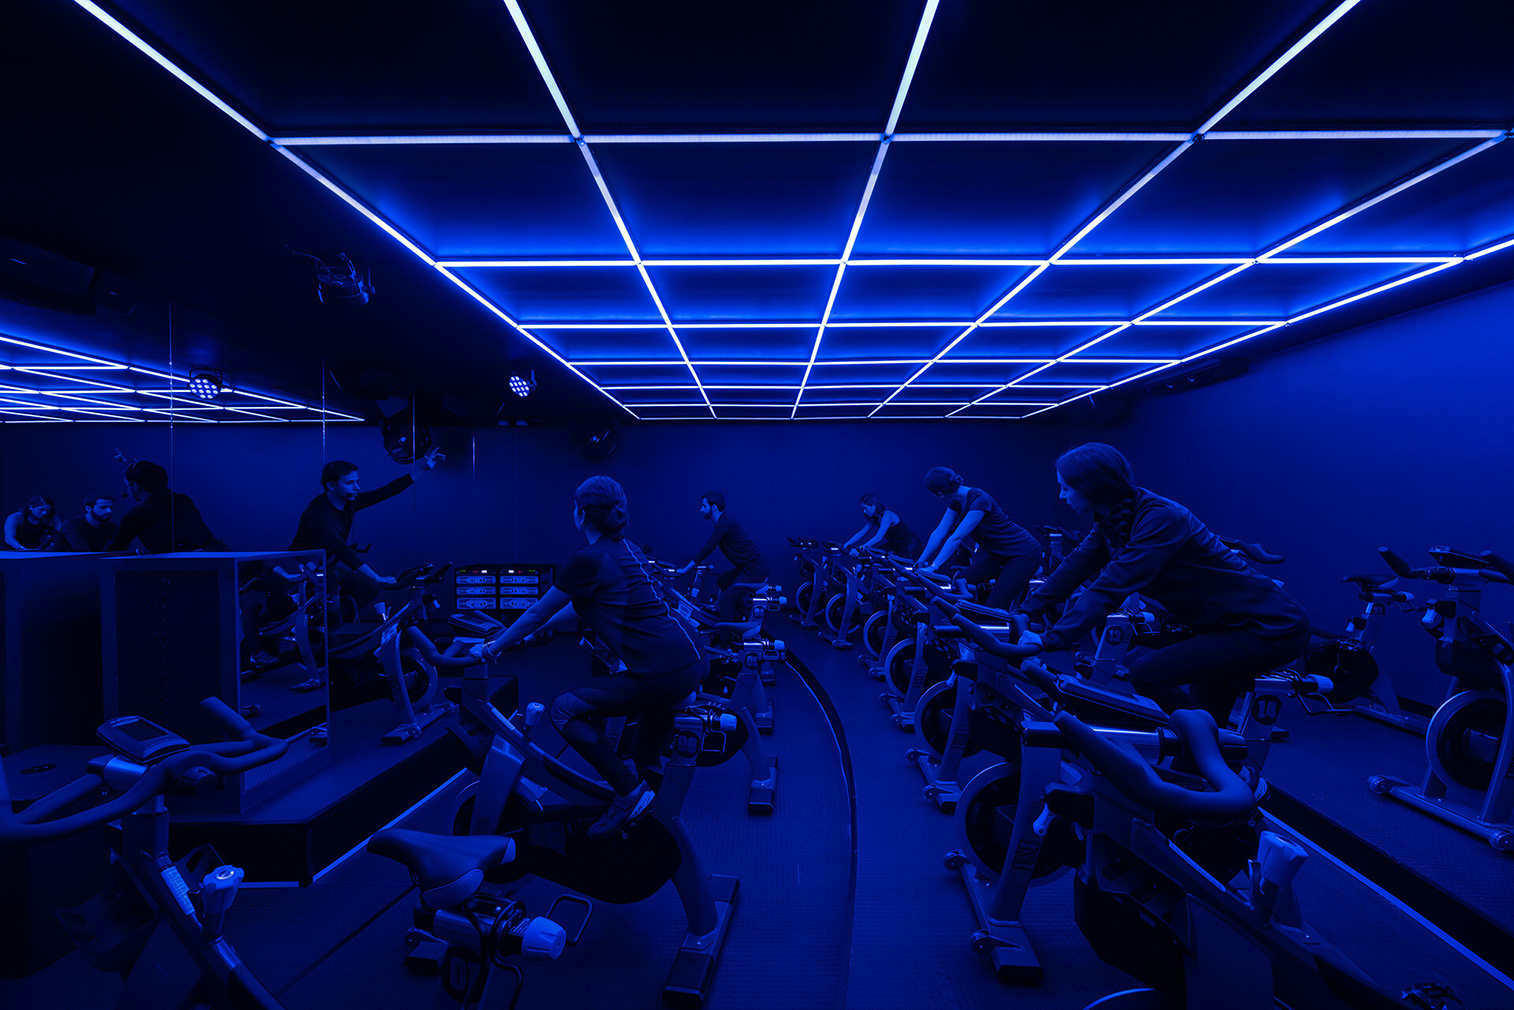 Gyms that raise the bar for design: Refuse spinning club